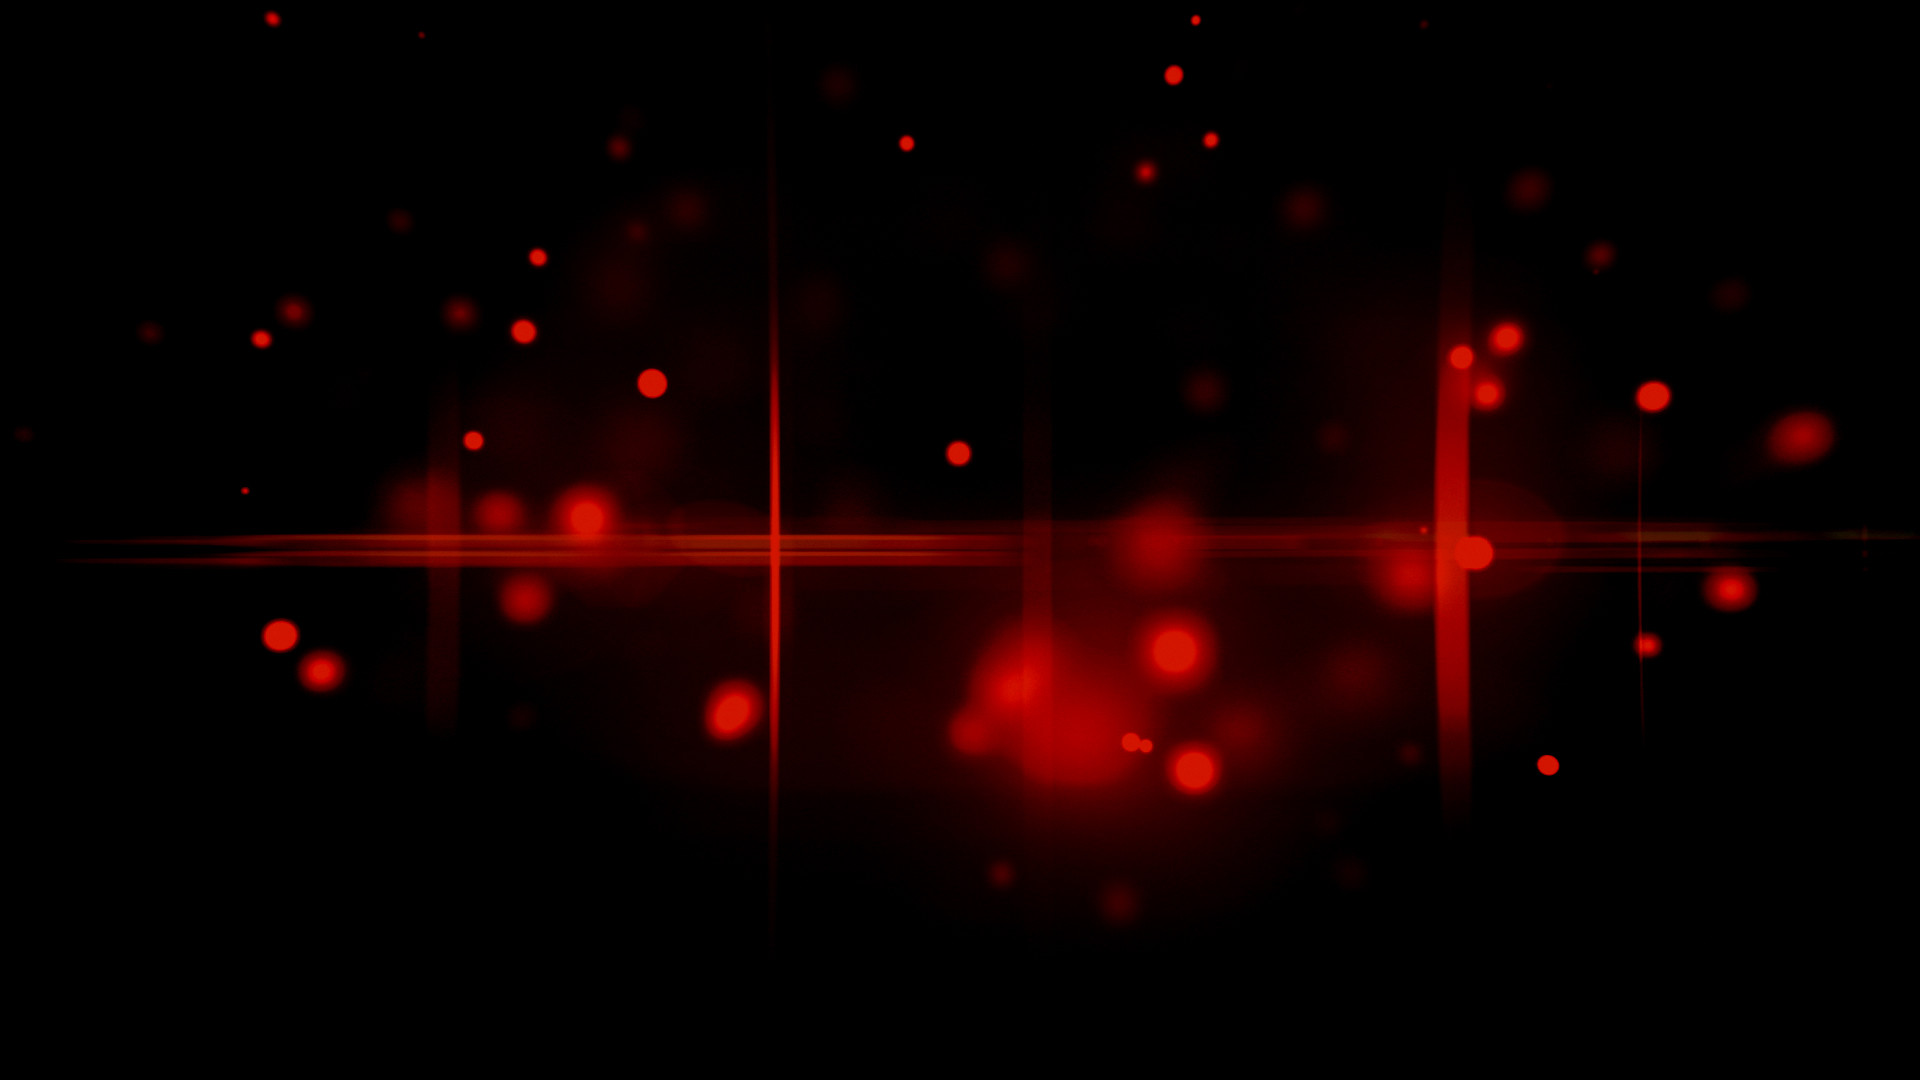 10 Most Impressive Abstract Wallpapers · Dark Particle Background